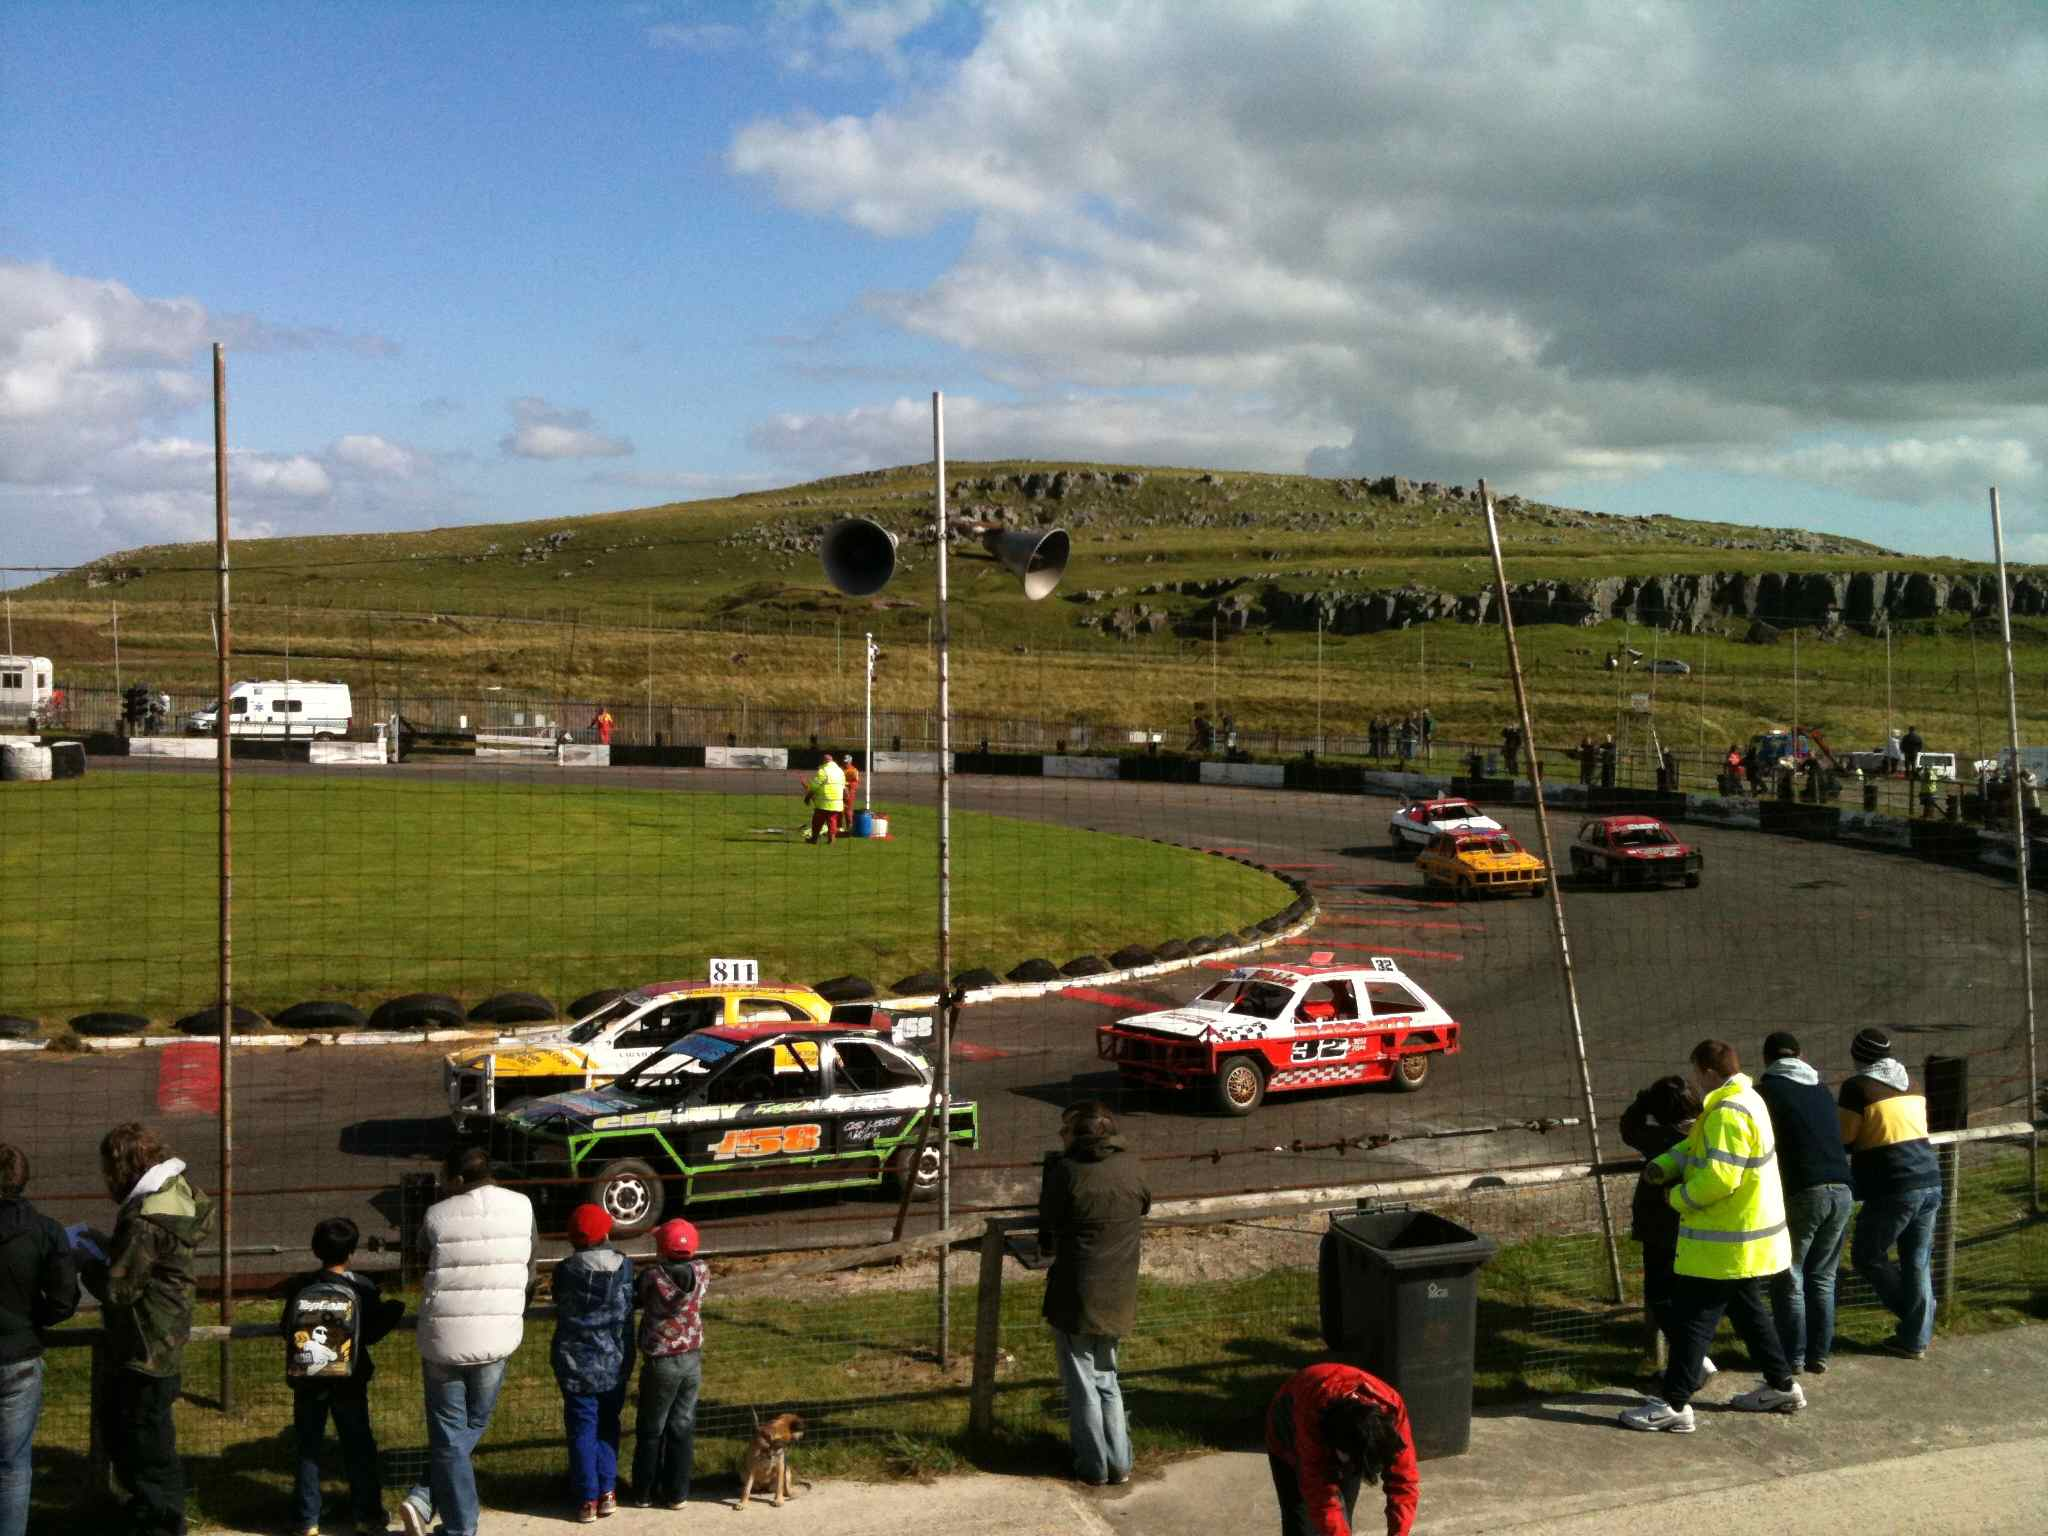 Stockcars racing around the corner of a track, with a rocky hill as the backdrop